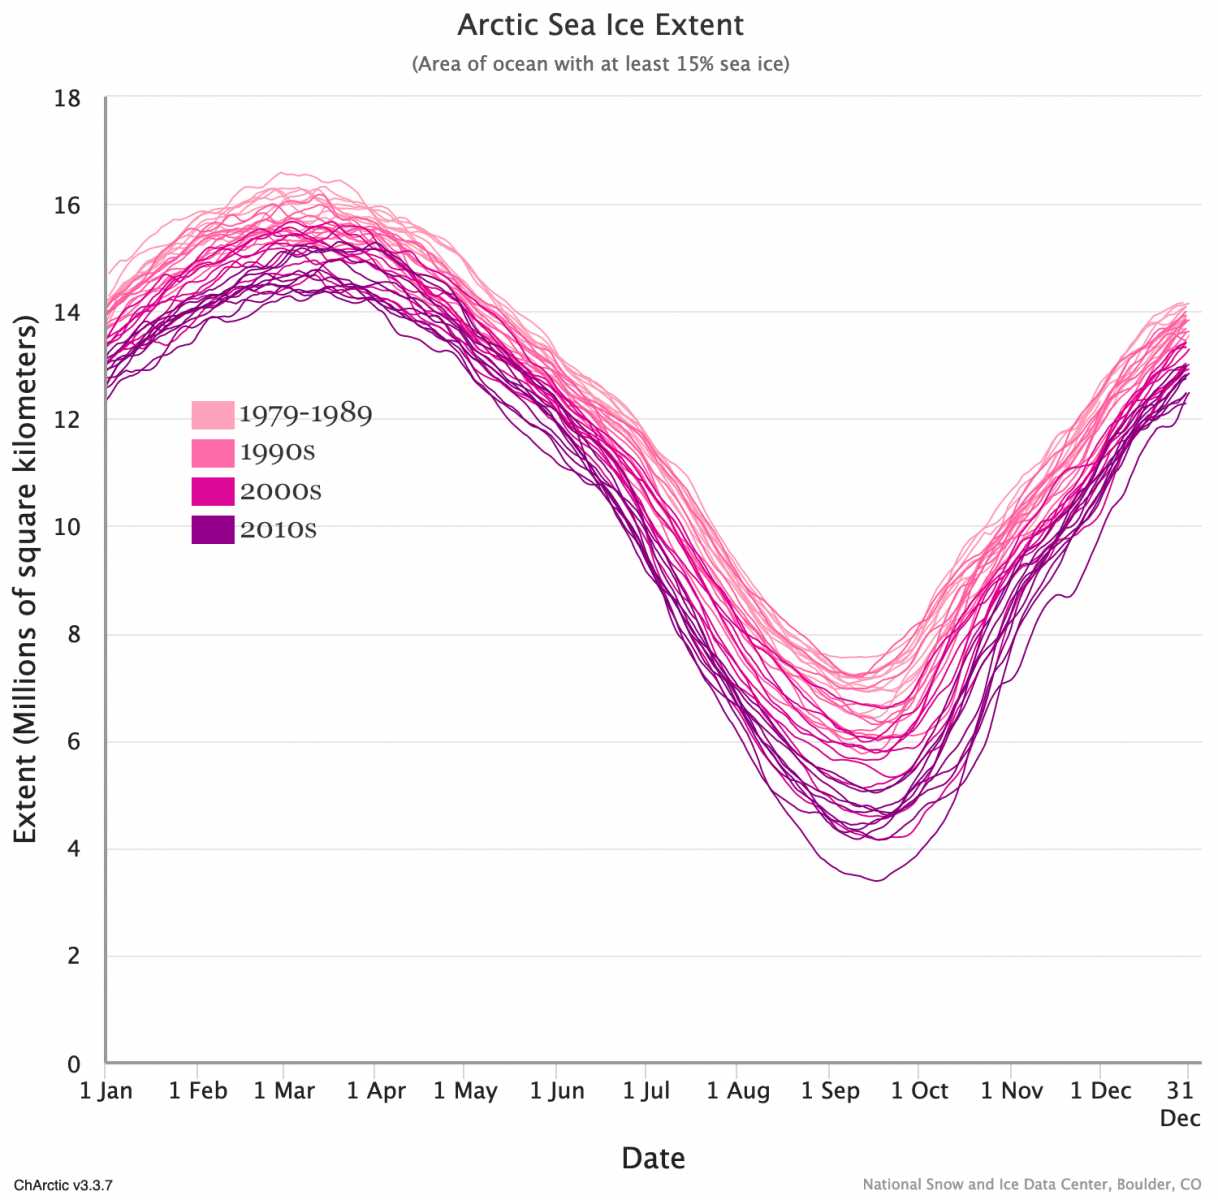 Arctic sea ice extent time series